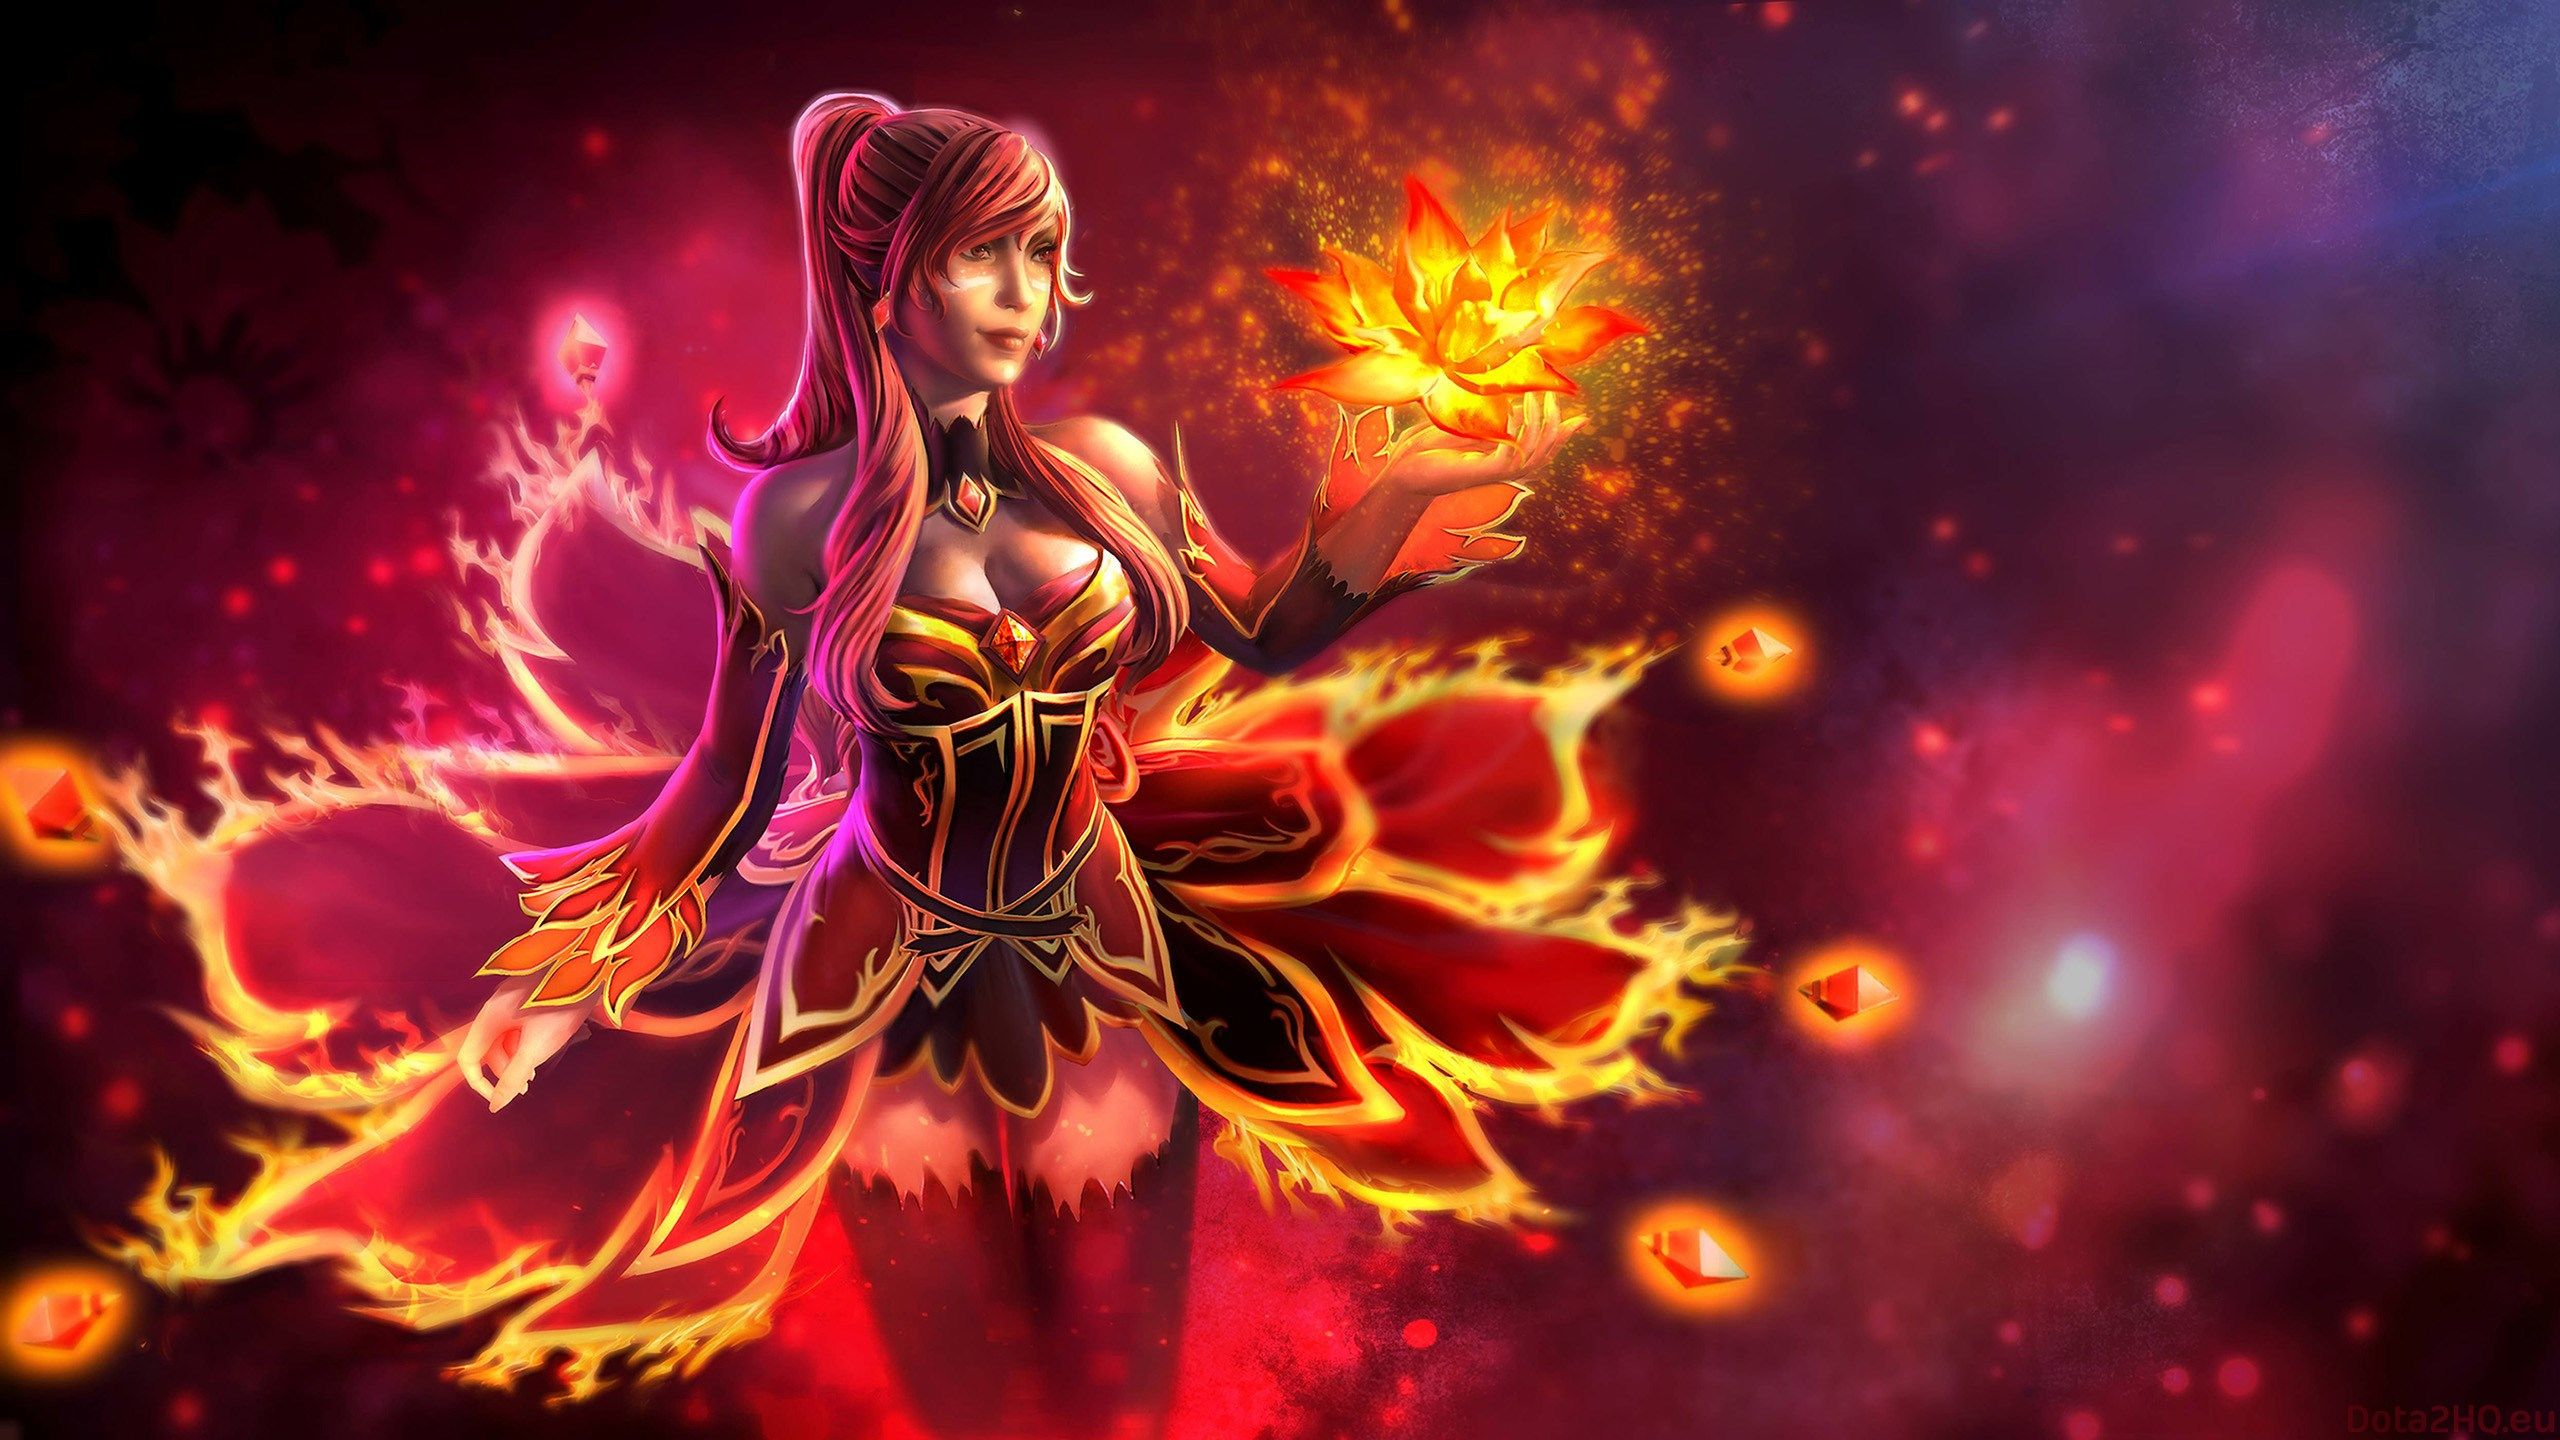 2560x1440 Lina Dota 2 Wallpaper Hd